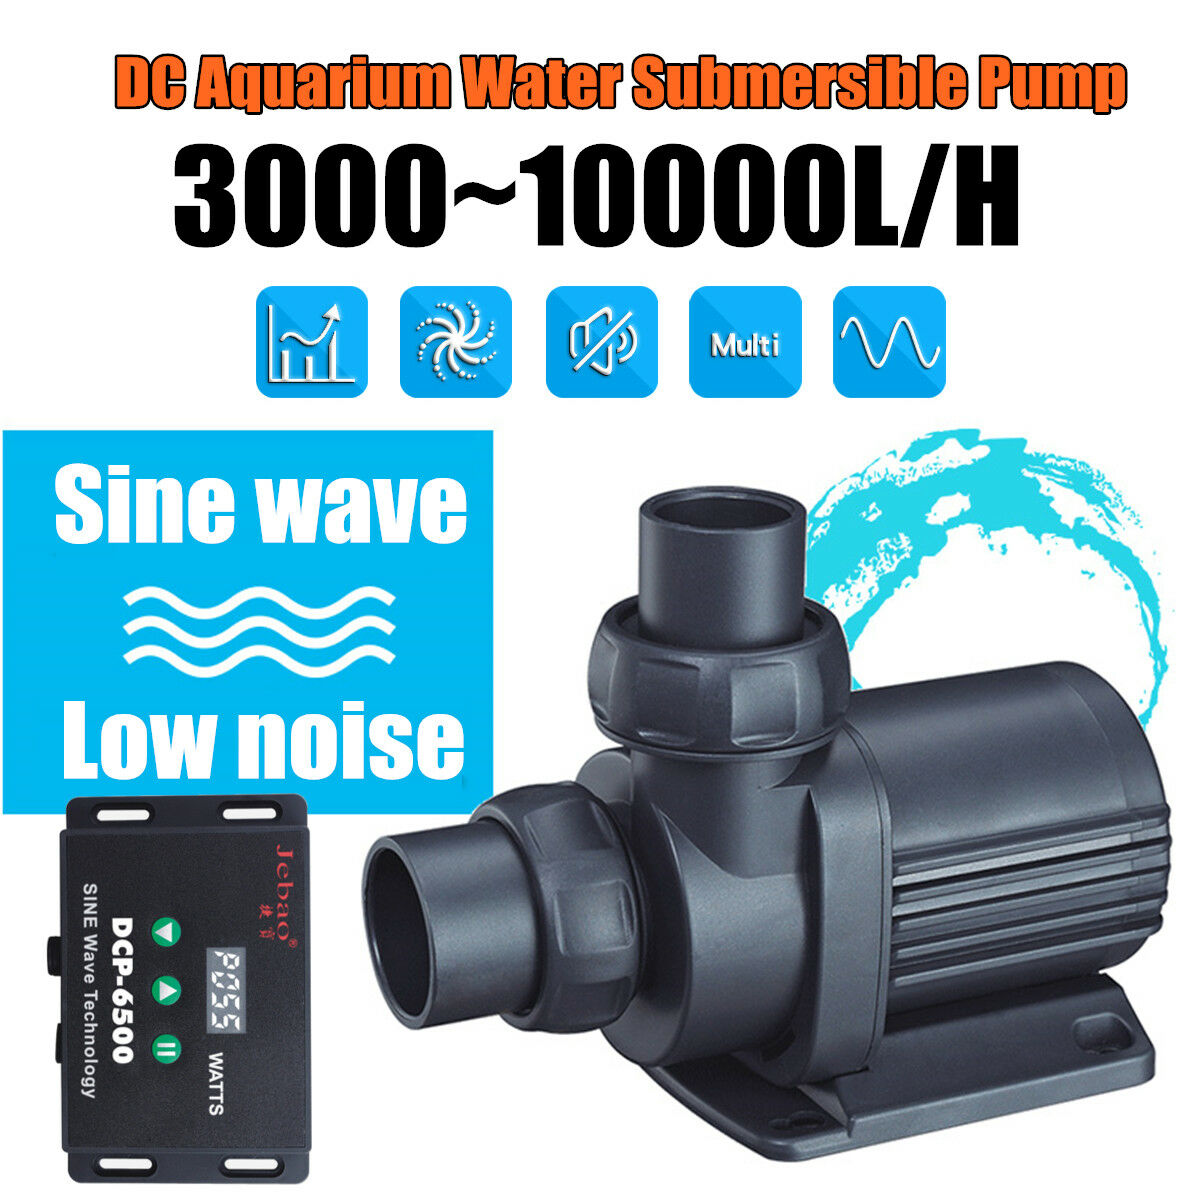 Submersible Water Pump for Aquarium Fish Tank Water Feature 300010000L H New A